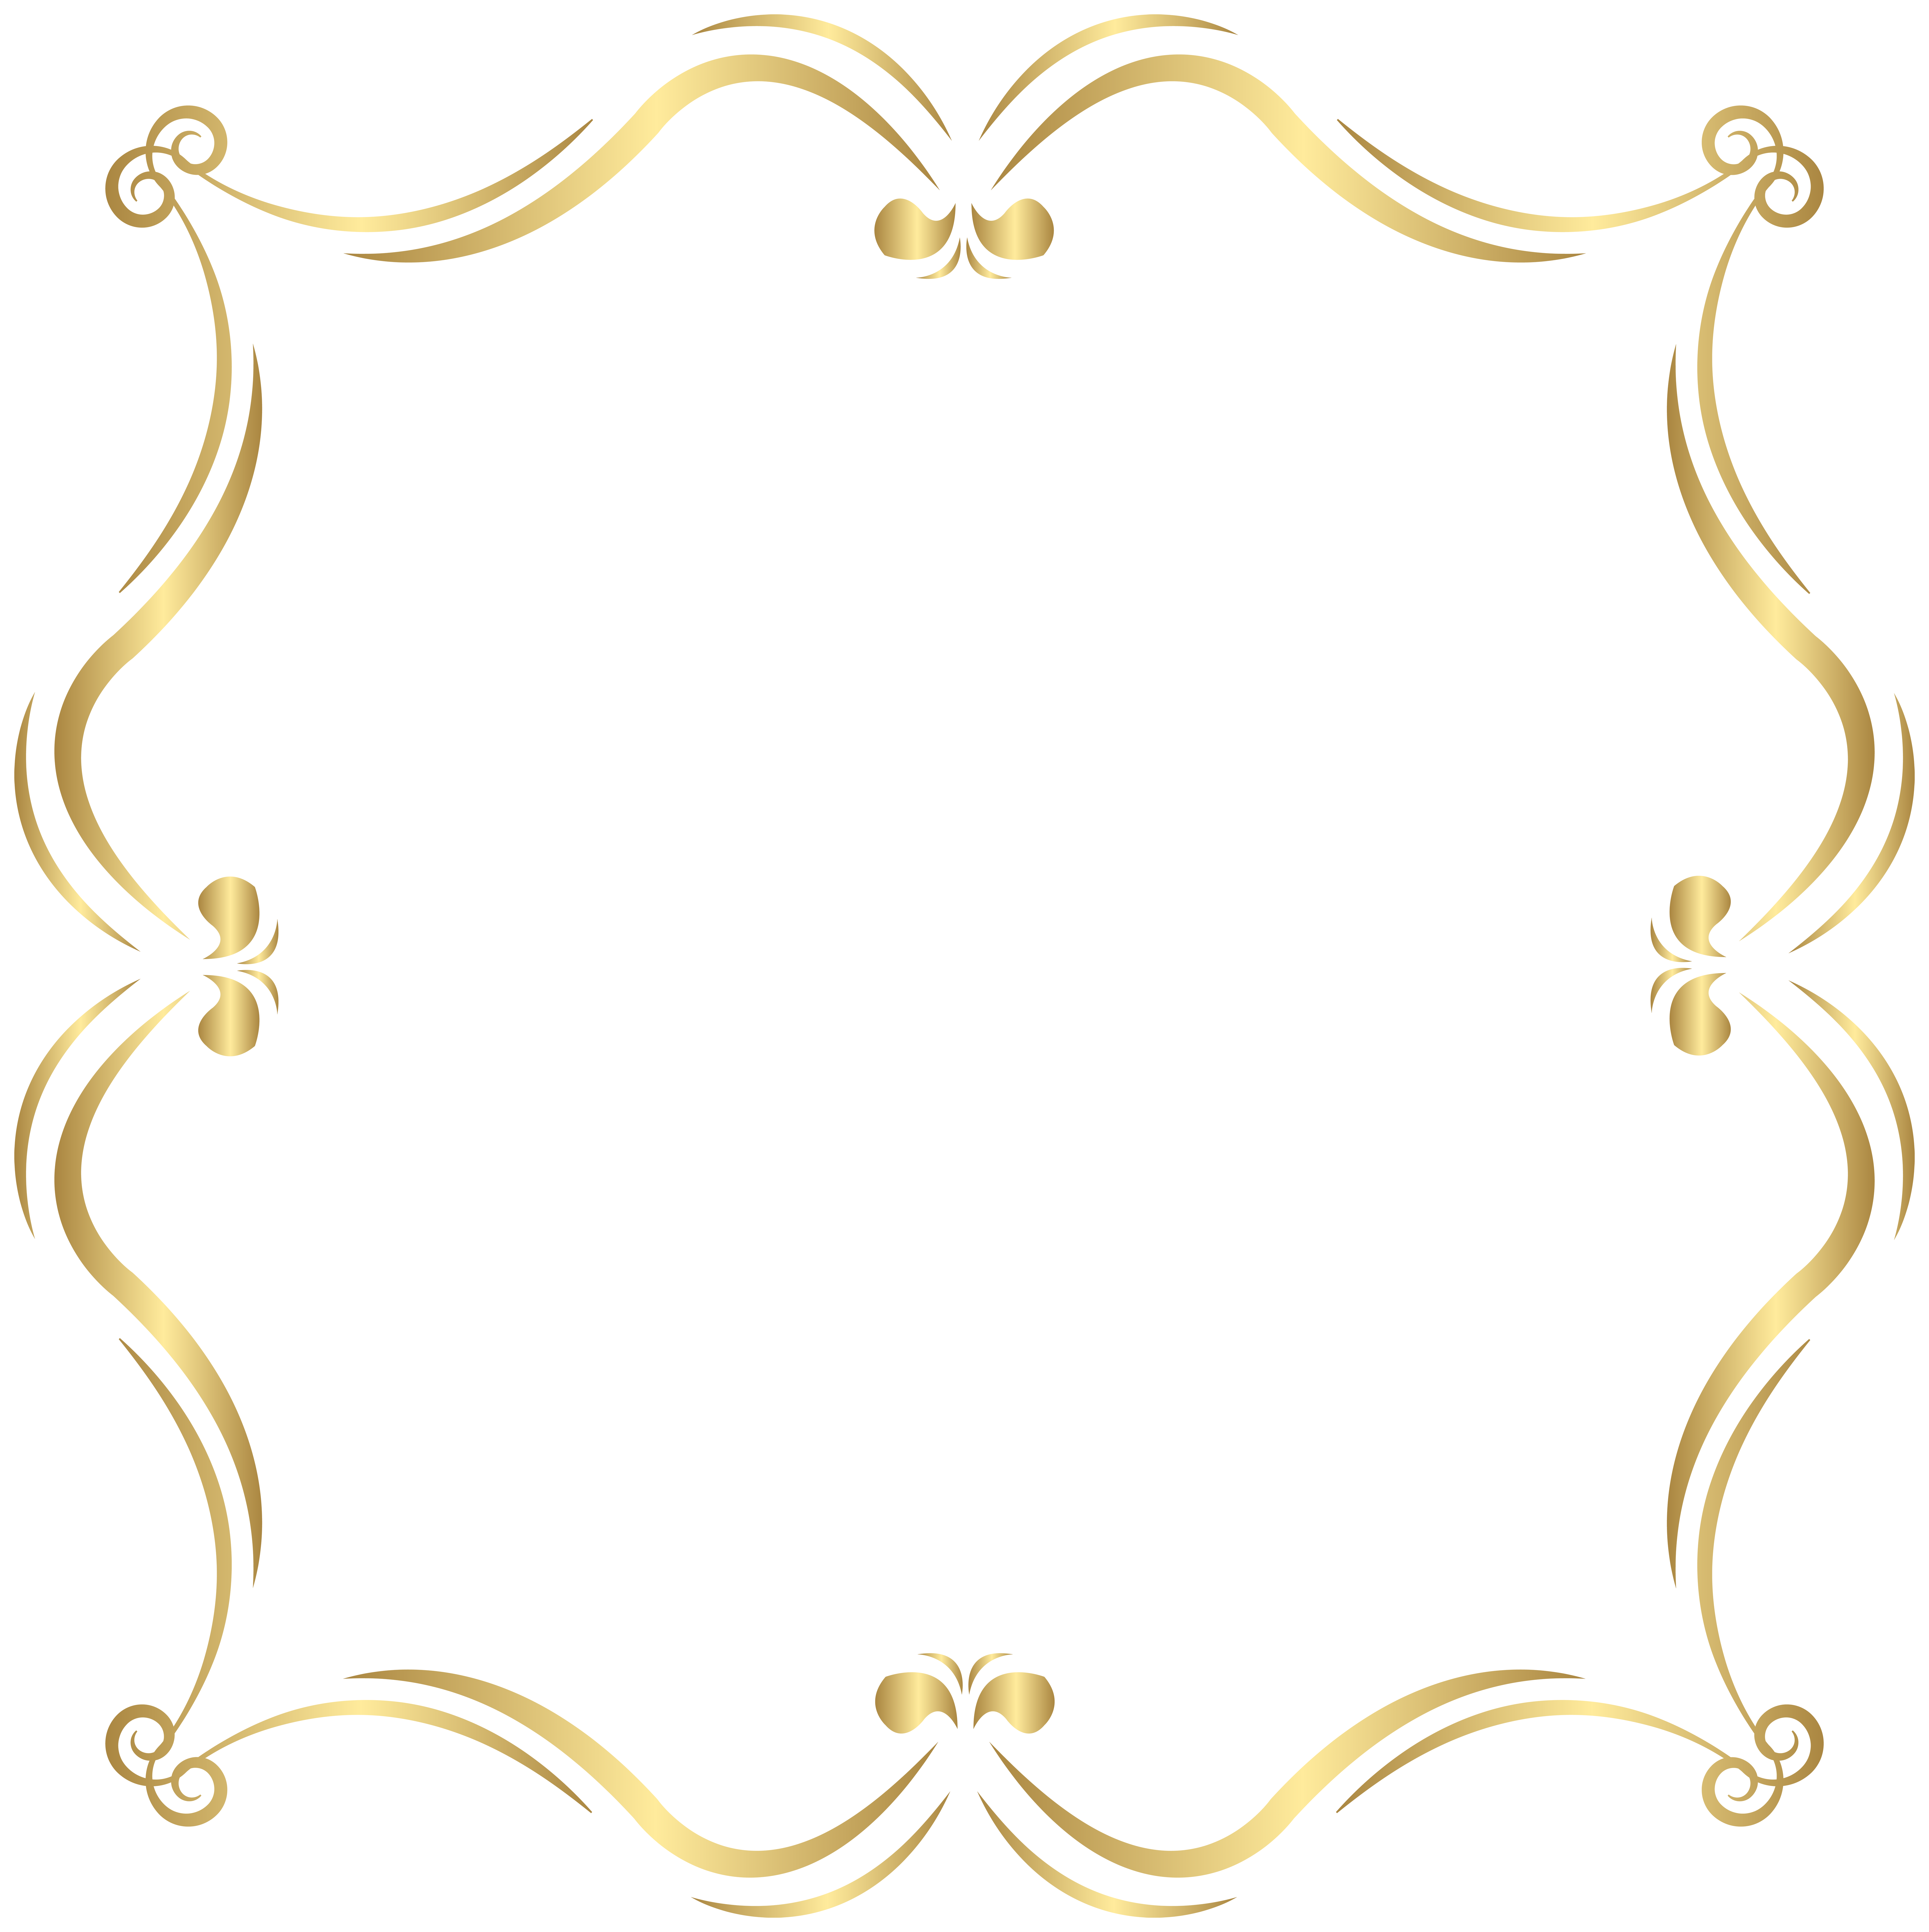 Gold frame clipart labels png border. Wonderful inspiration clip art